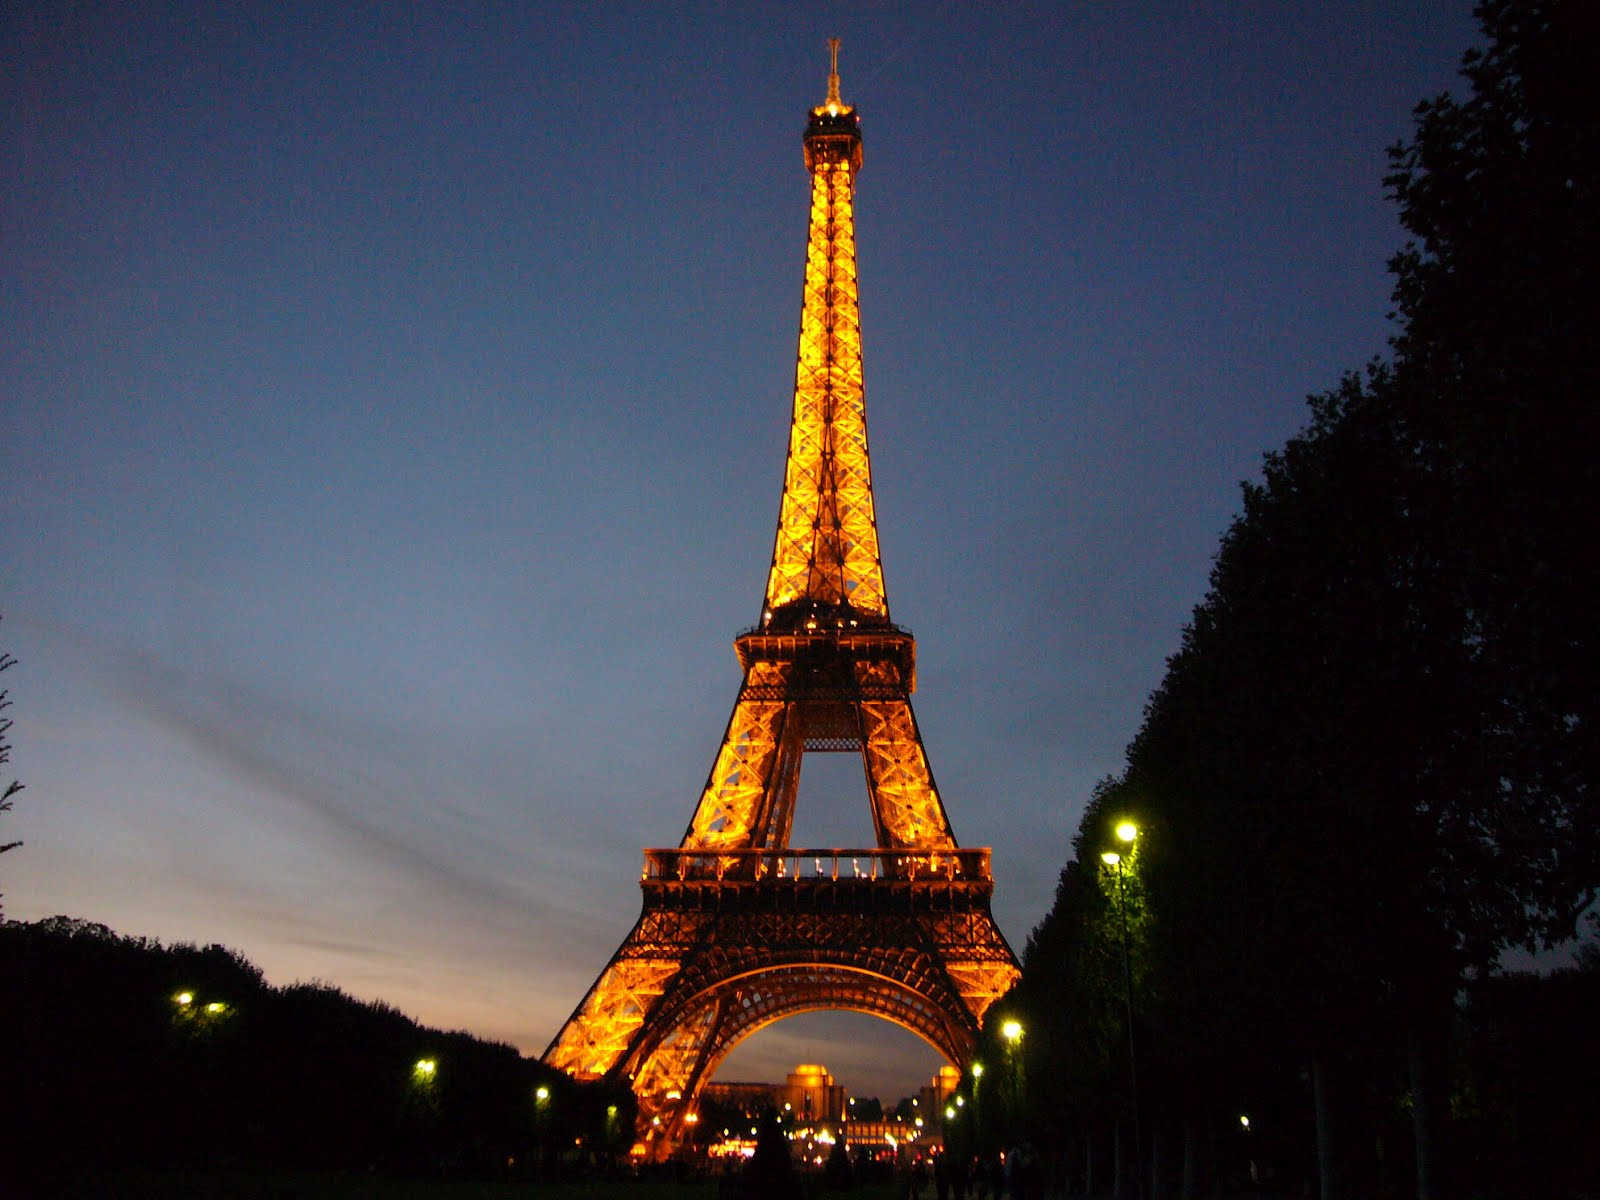 eiffel tower - photo #21